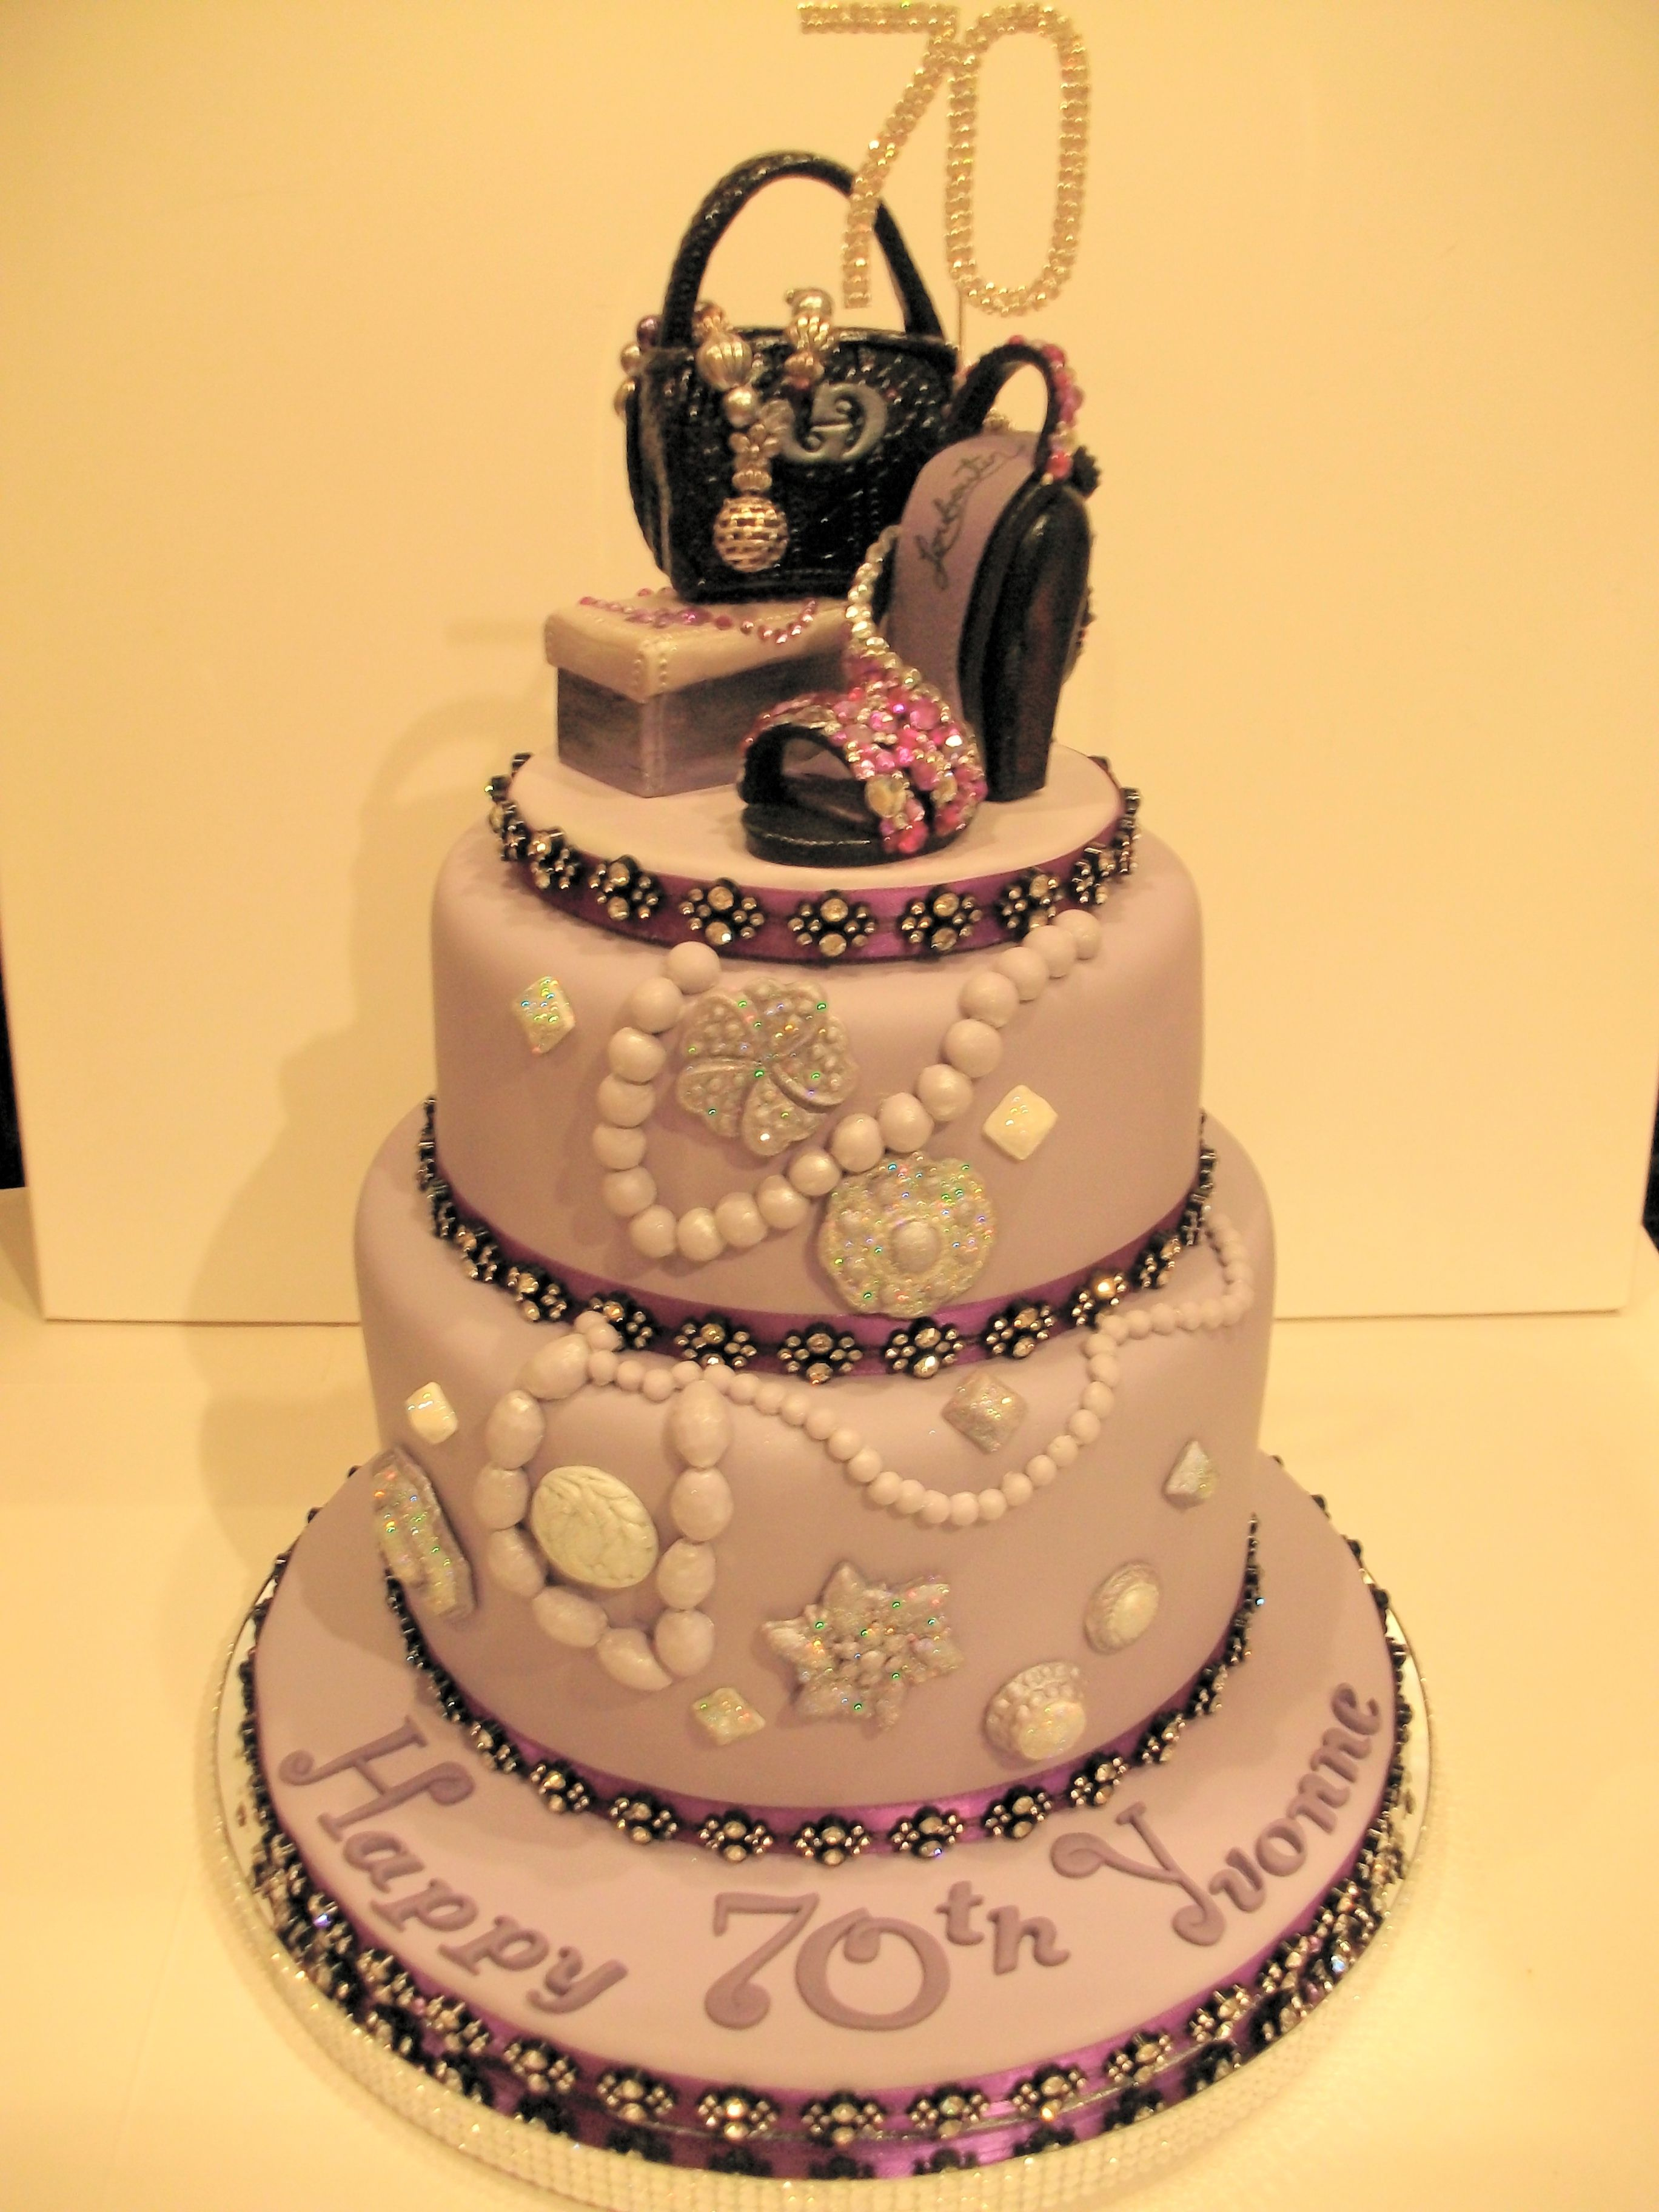 Diamant Shoe And Designer Bag 70th Birthday Cake Decorated With